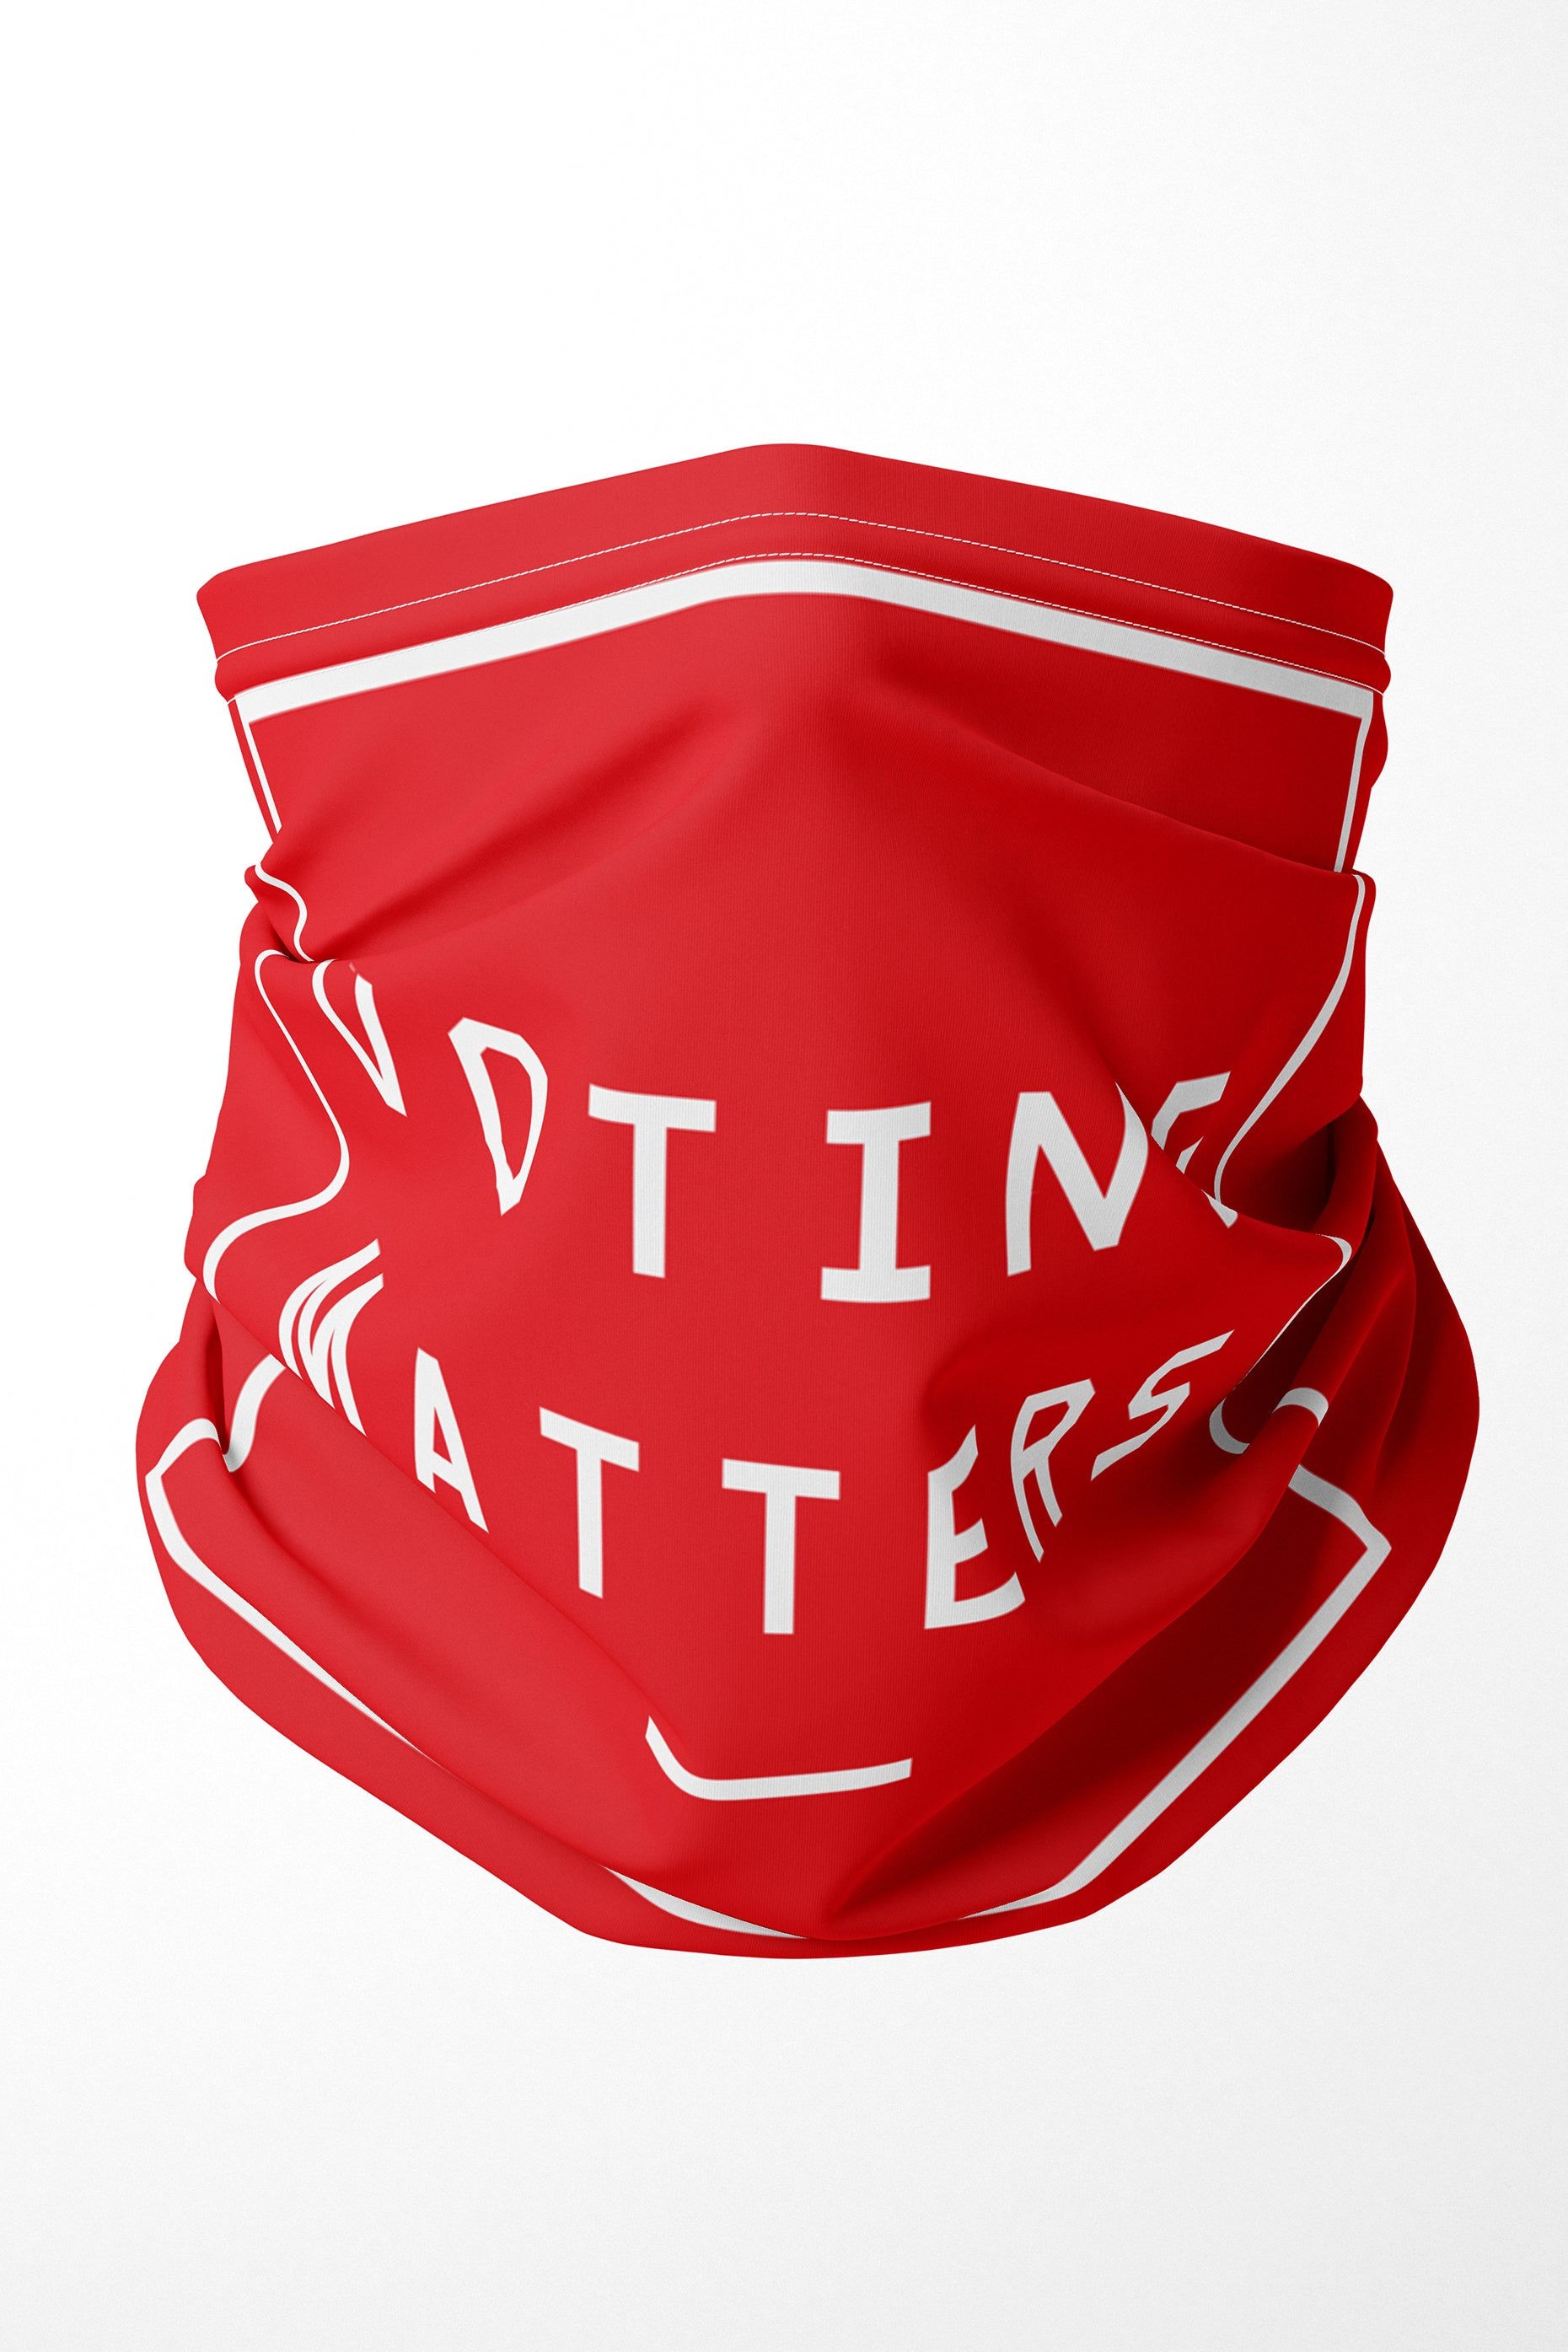 Vote Outdoor Mask,Protective 5-Layer Activated Carbon Filters Adult Men Women Bandana